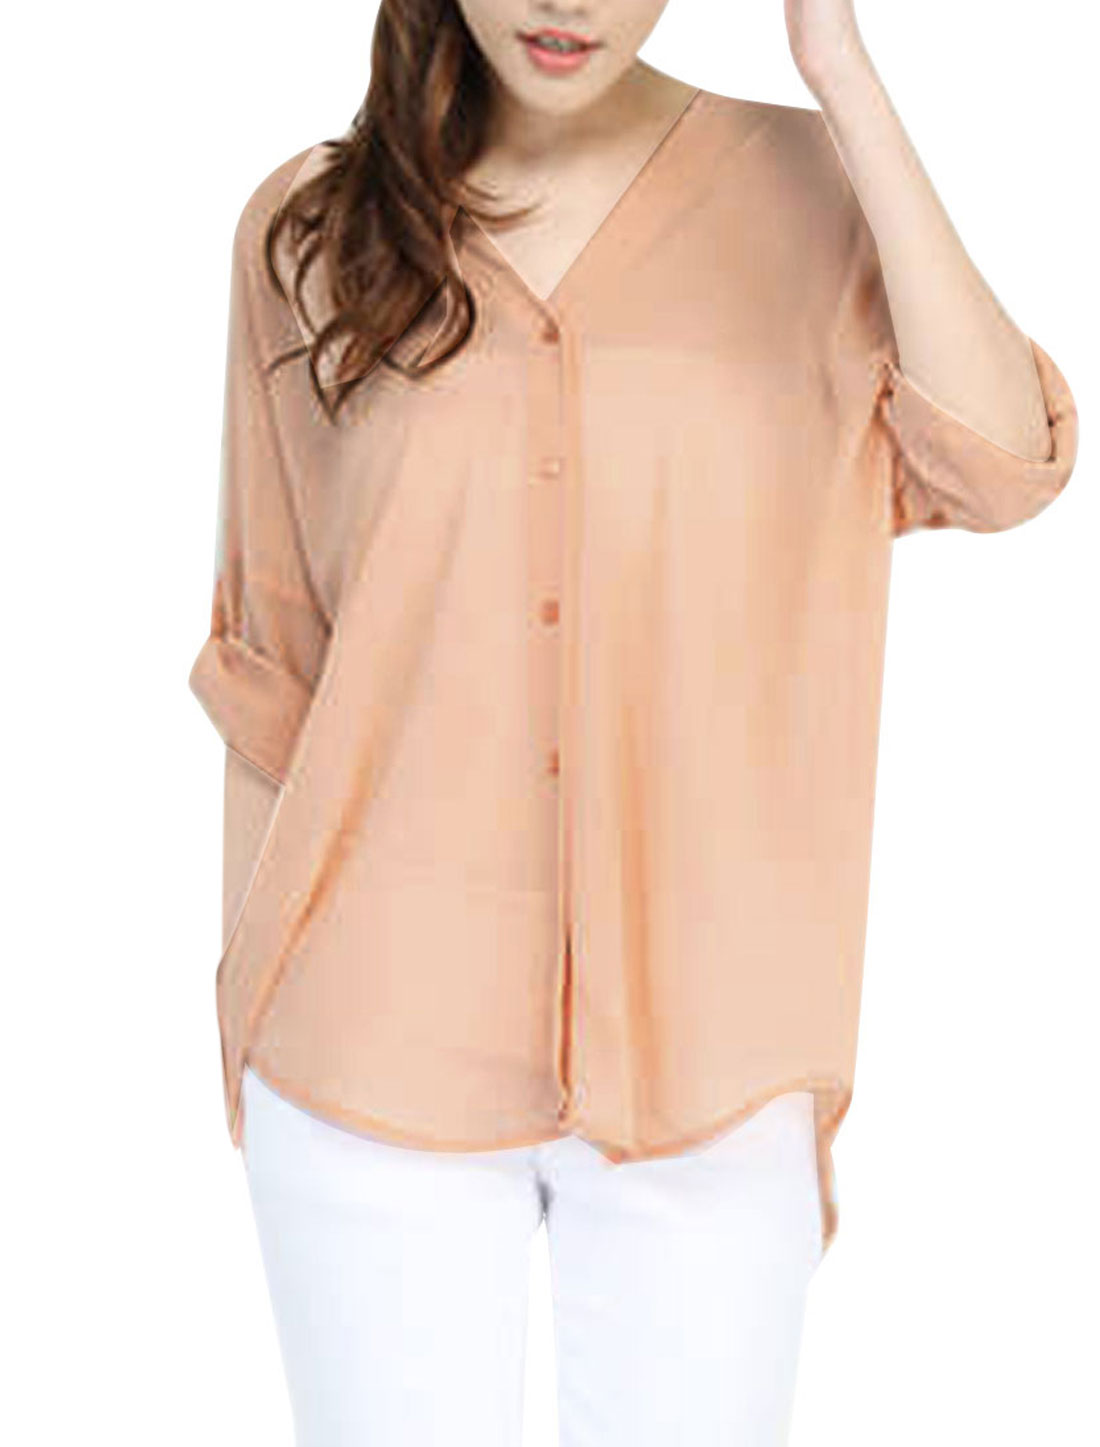 Women's Batwing Roll Up Sleeve Button Front Semi-sheer Chiffon Pale Pink Shirt S